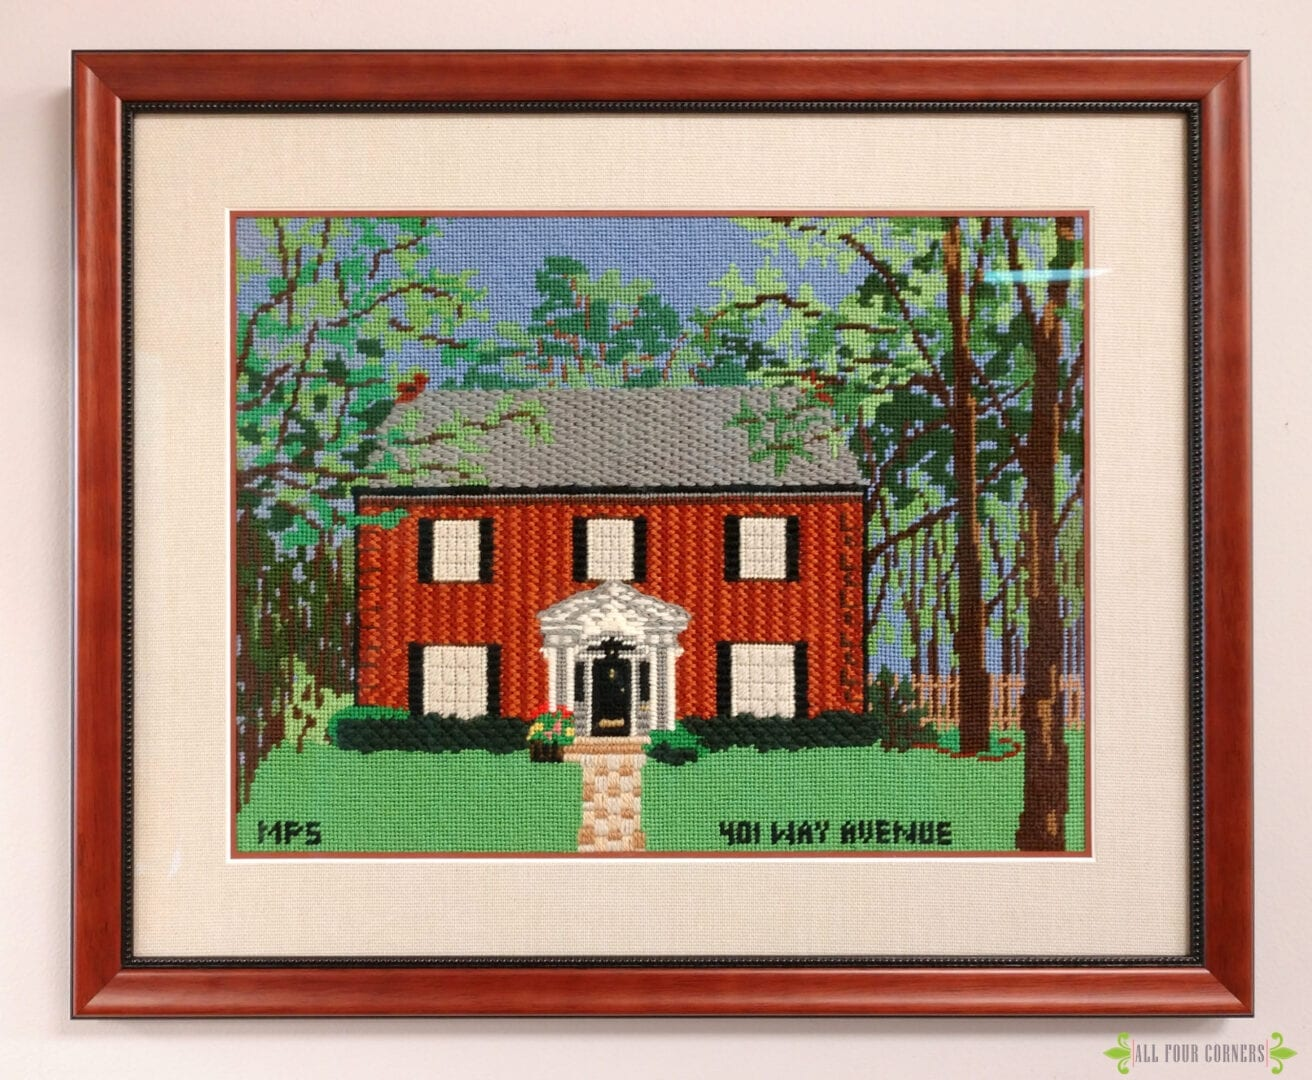 full needlepoint framed in wood